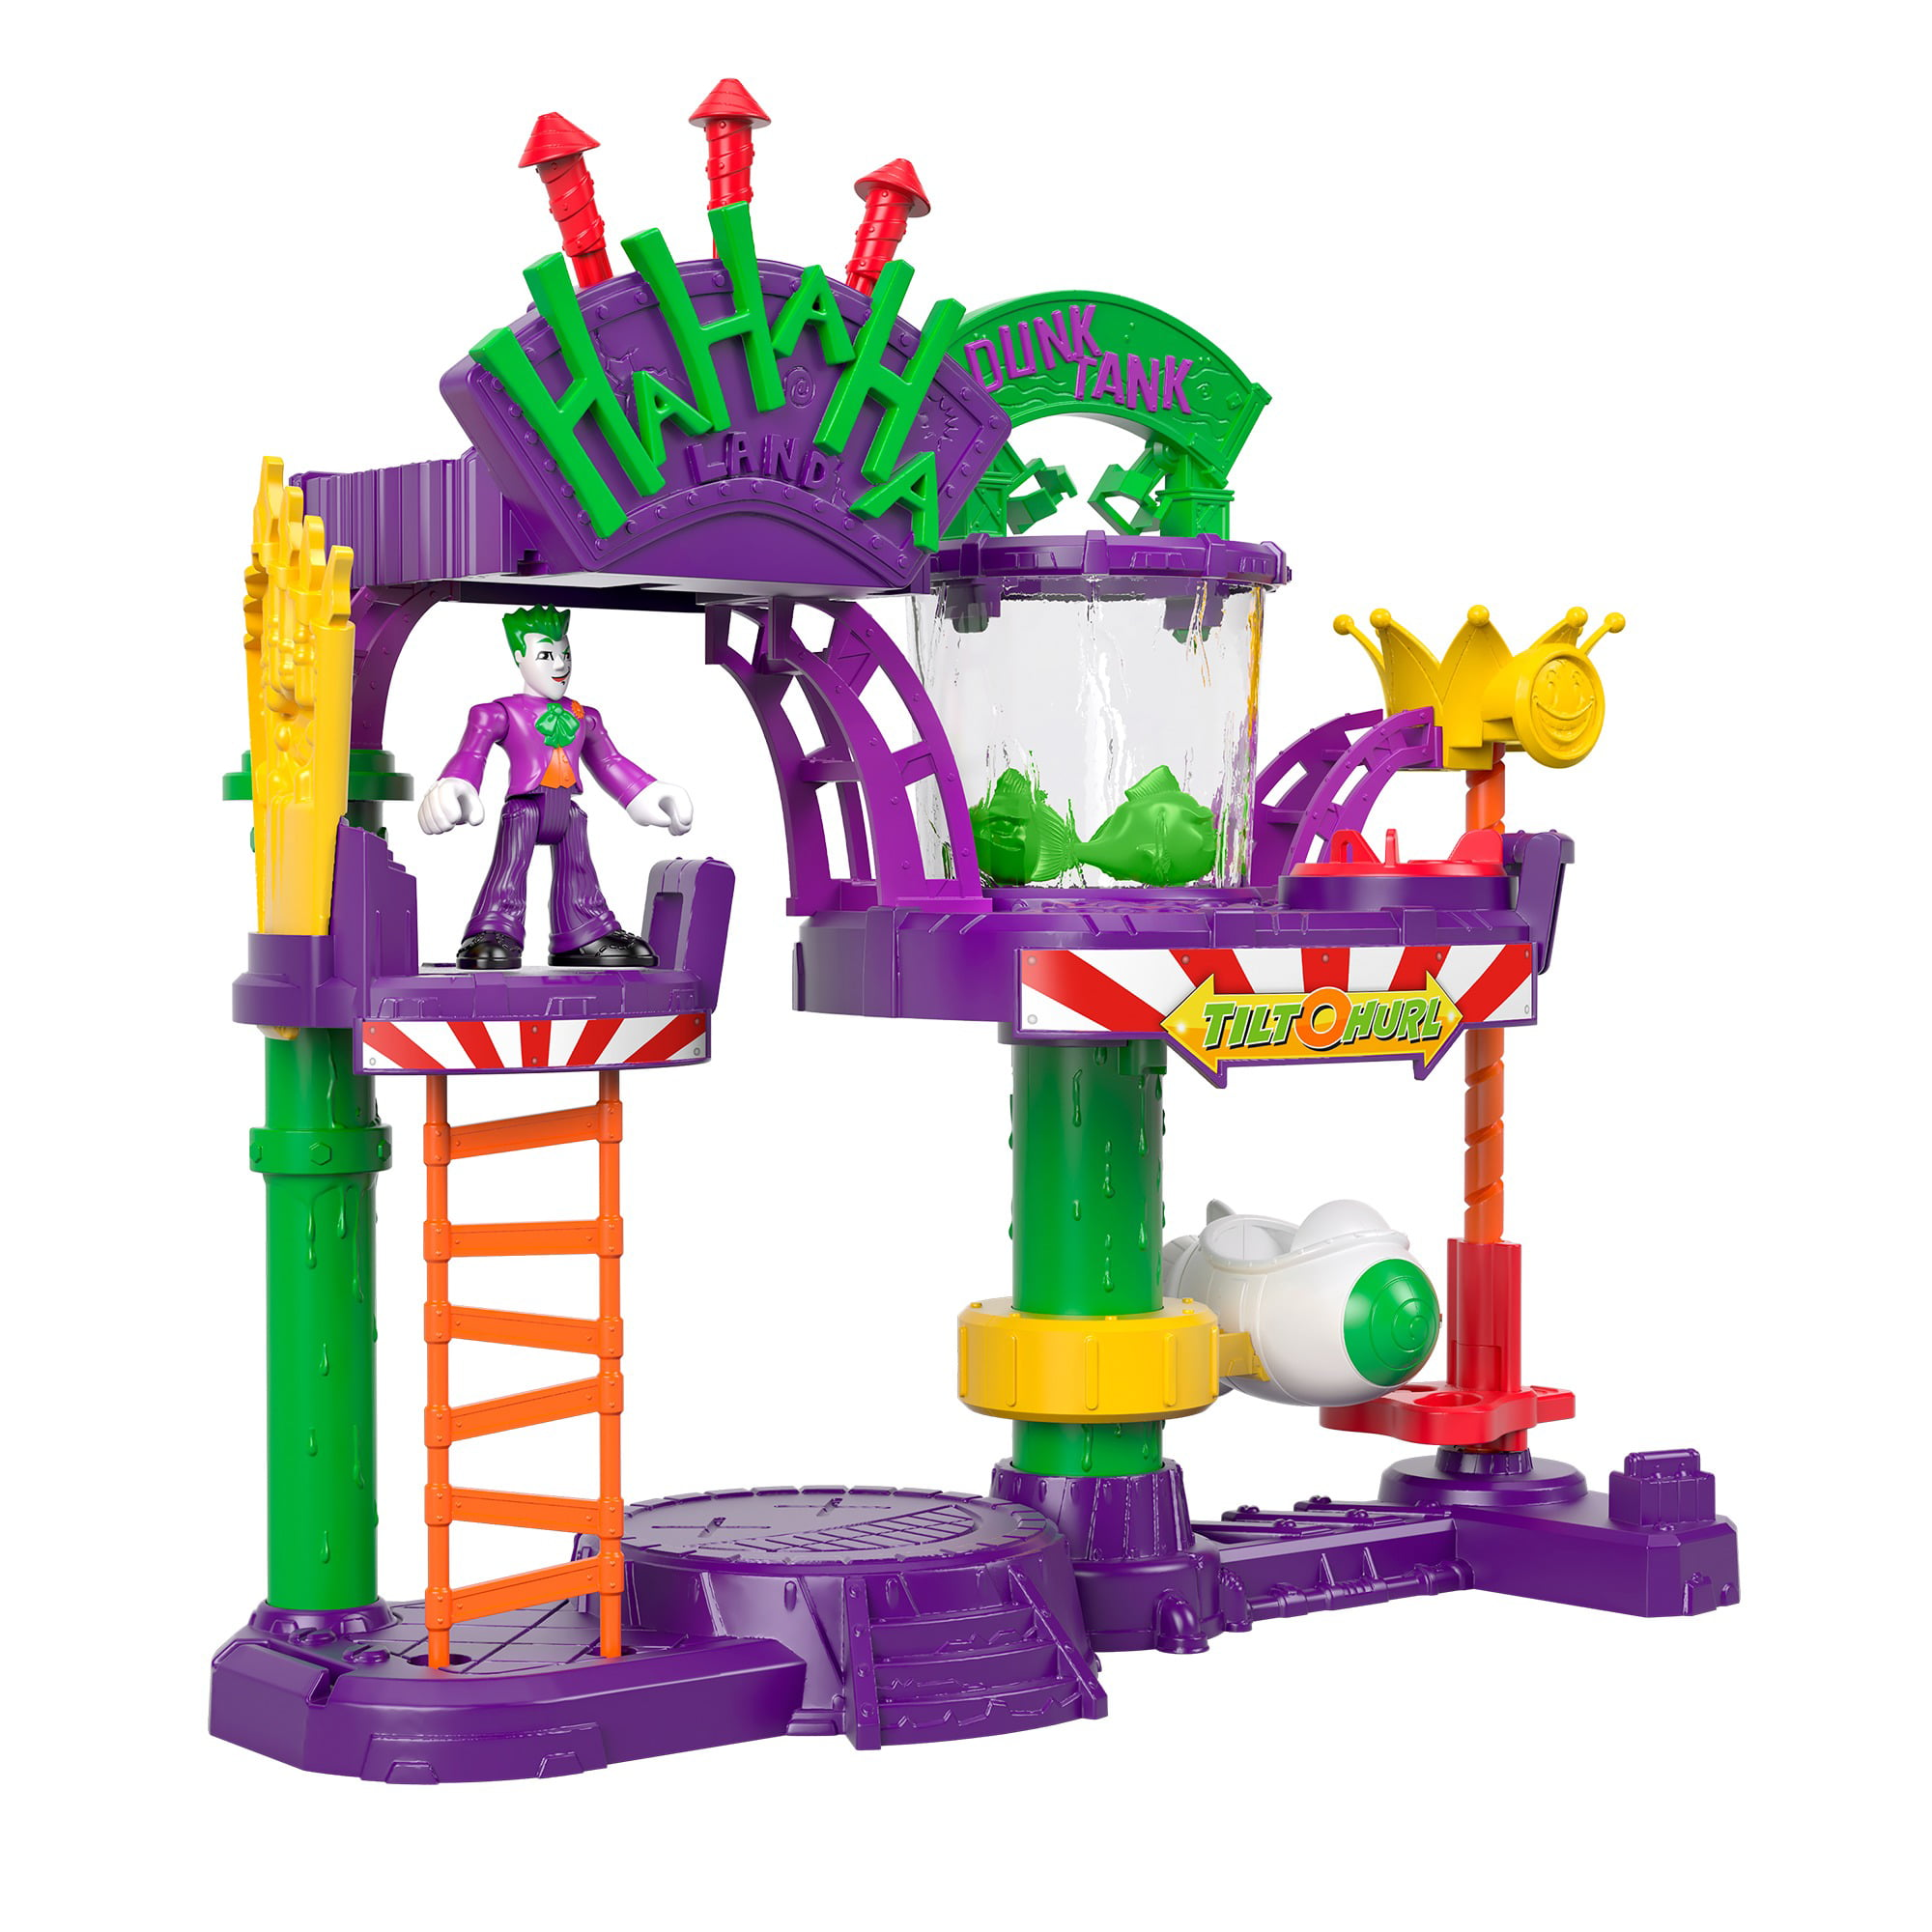 Imaginext DC Super Friends The Joker Laff Factory Playset - Walmart.com